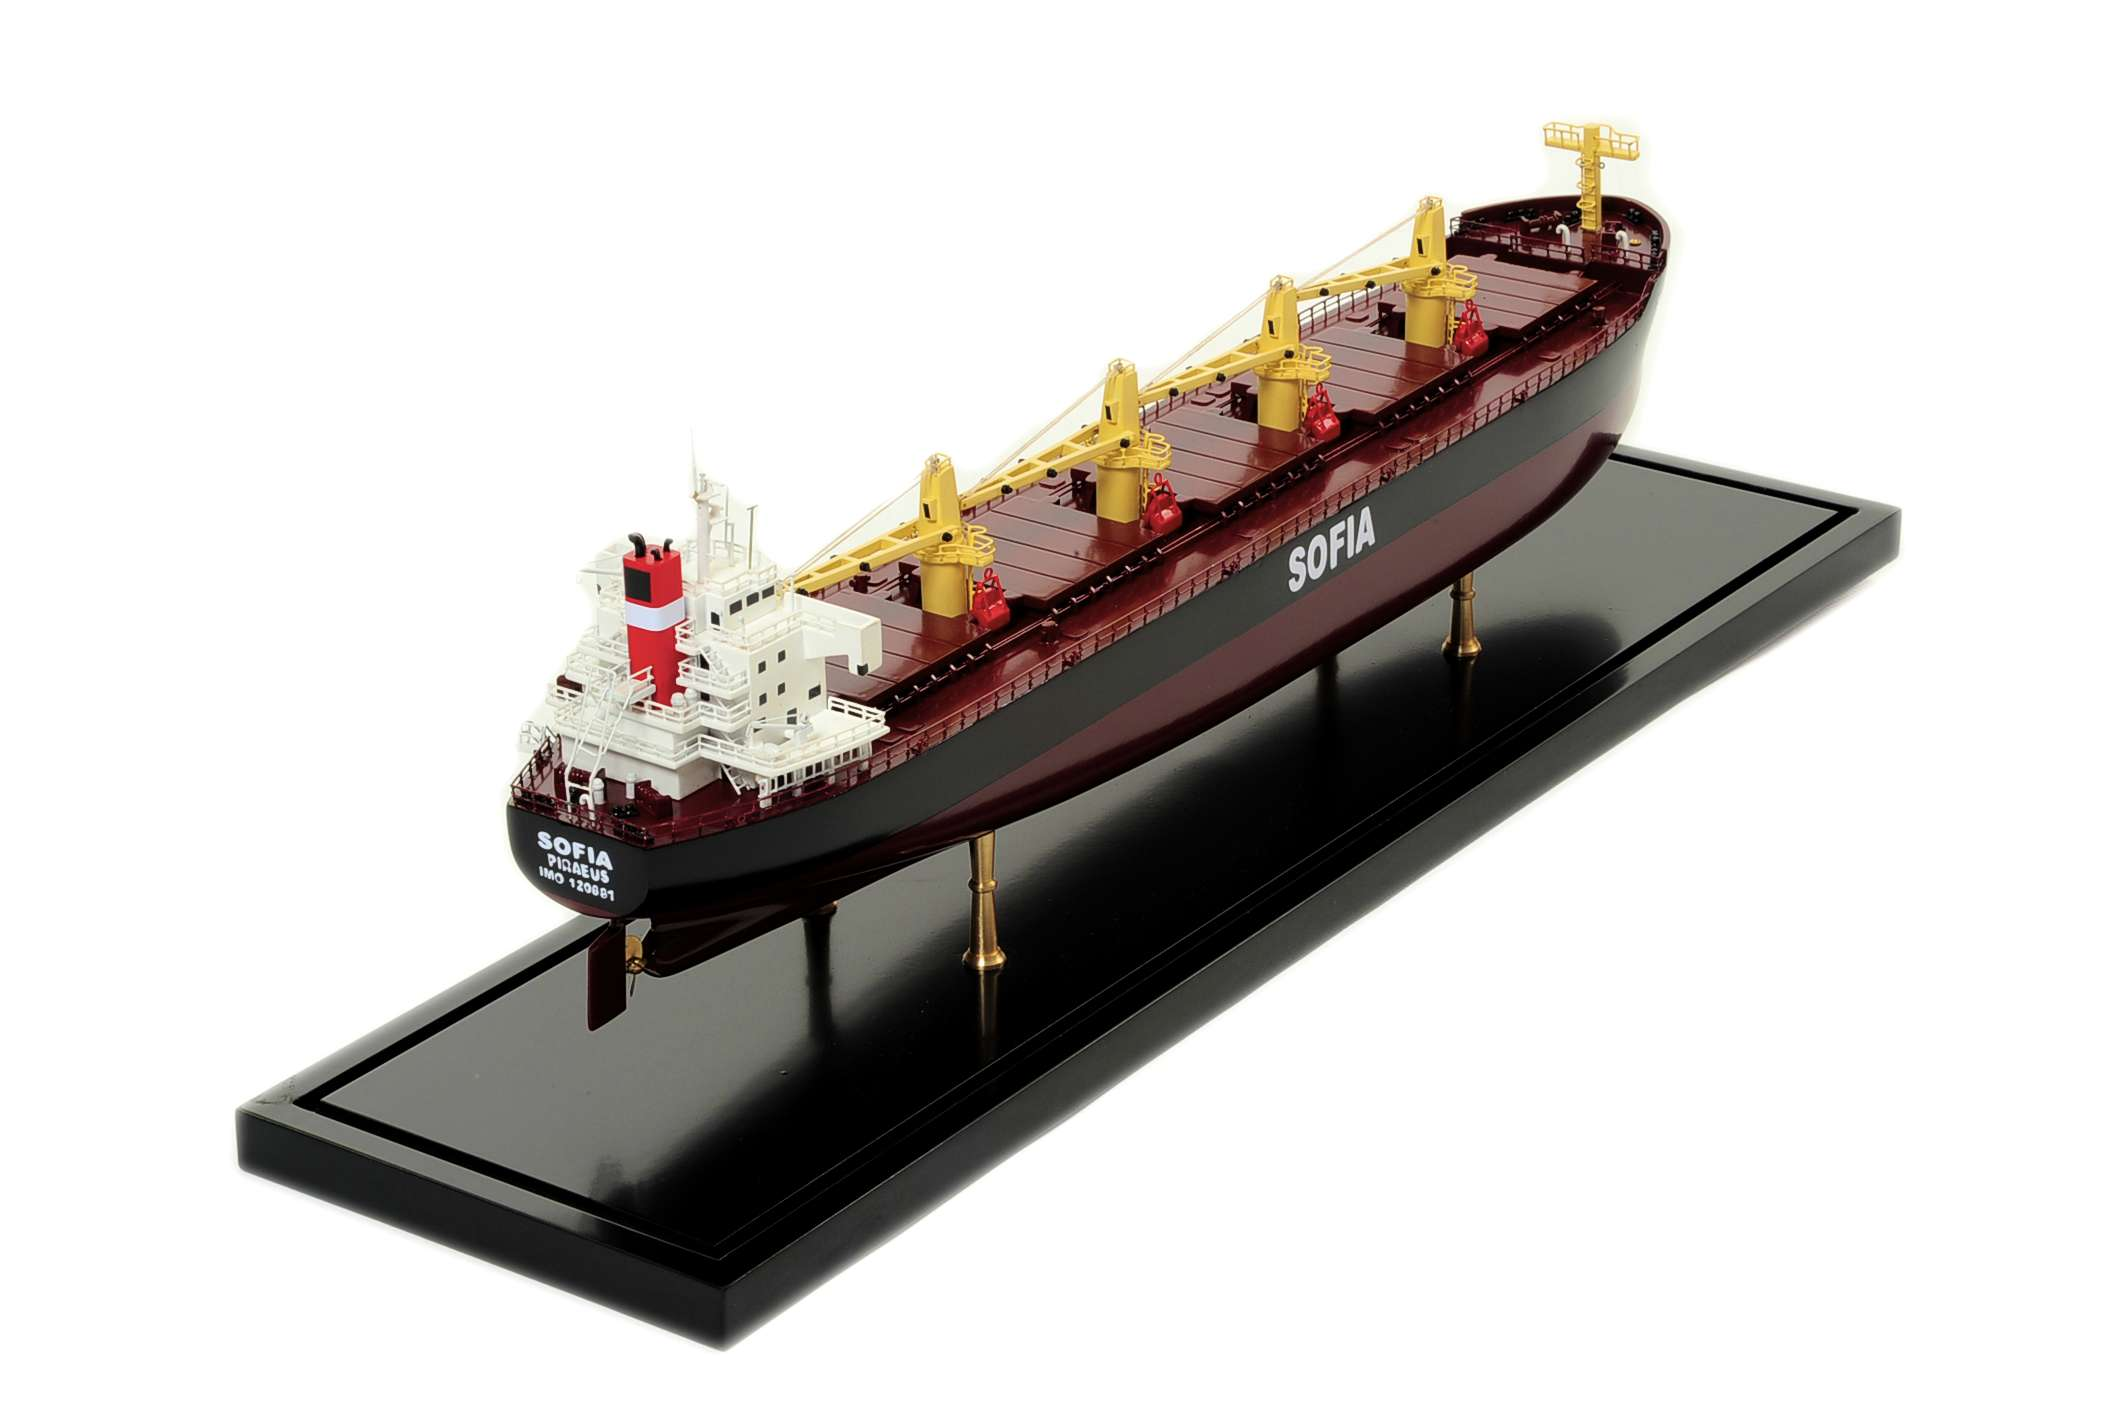 1450-4501-Bulk-Carrier-3-Model-Ship